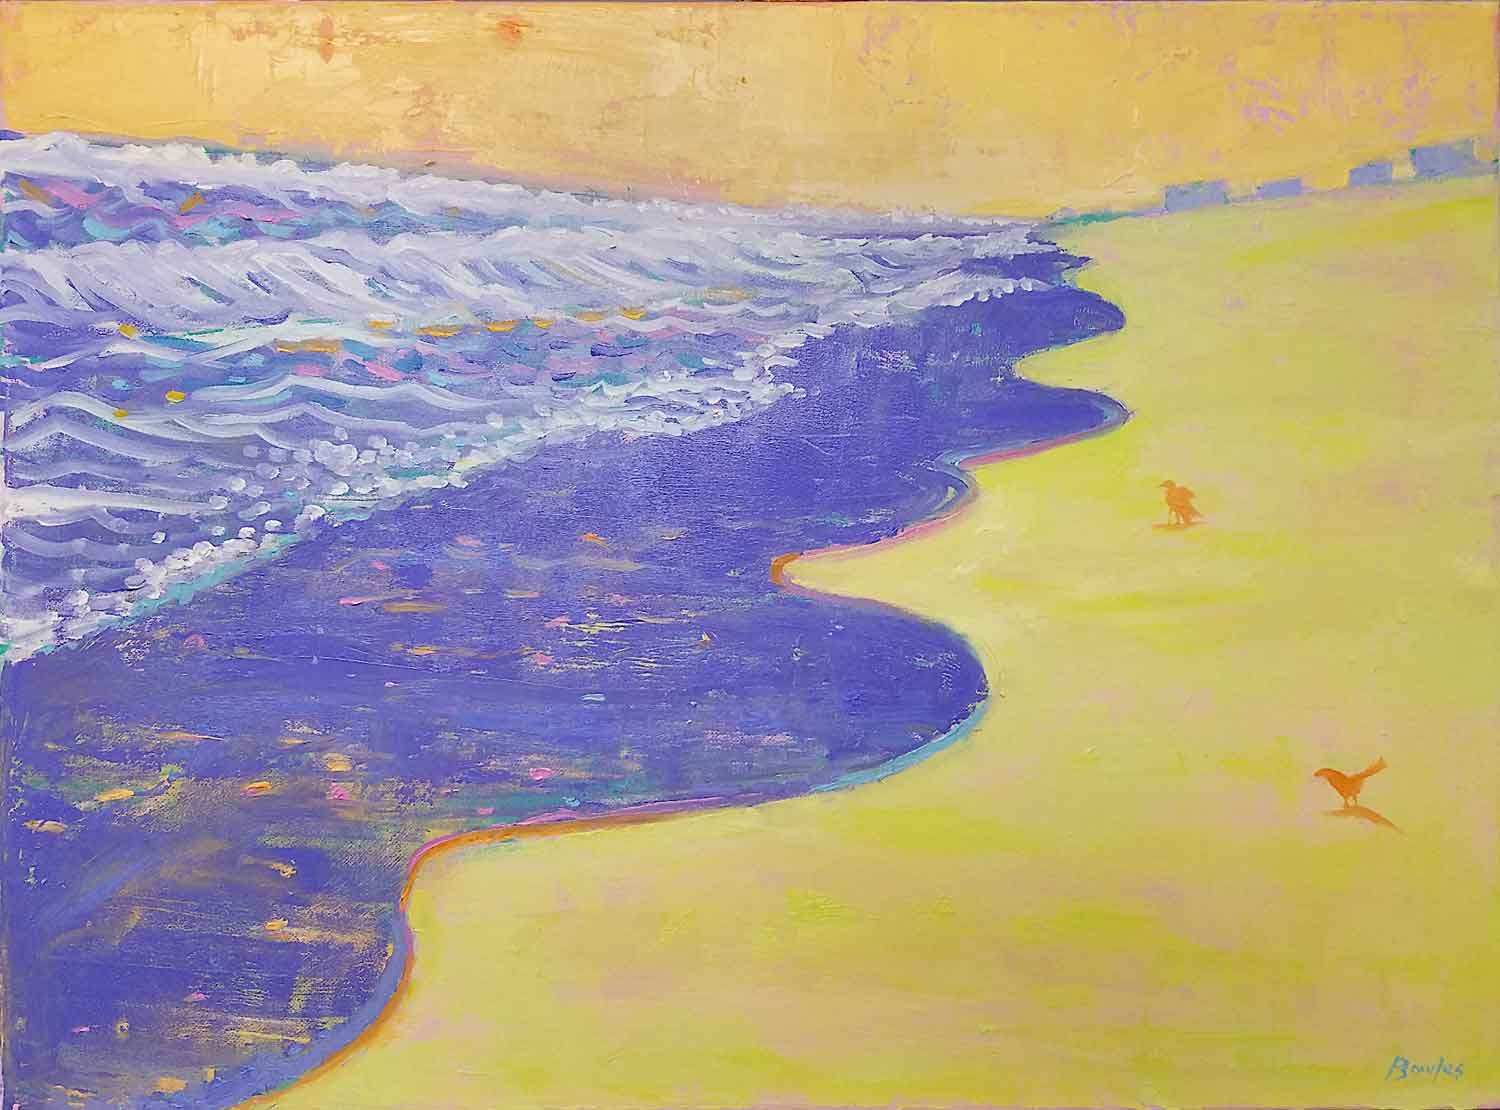 The Purple Ocean and Yellow Beach - Original Painting, 18x24in.